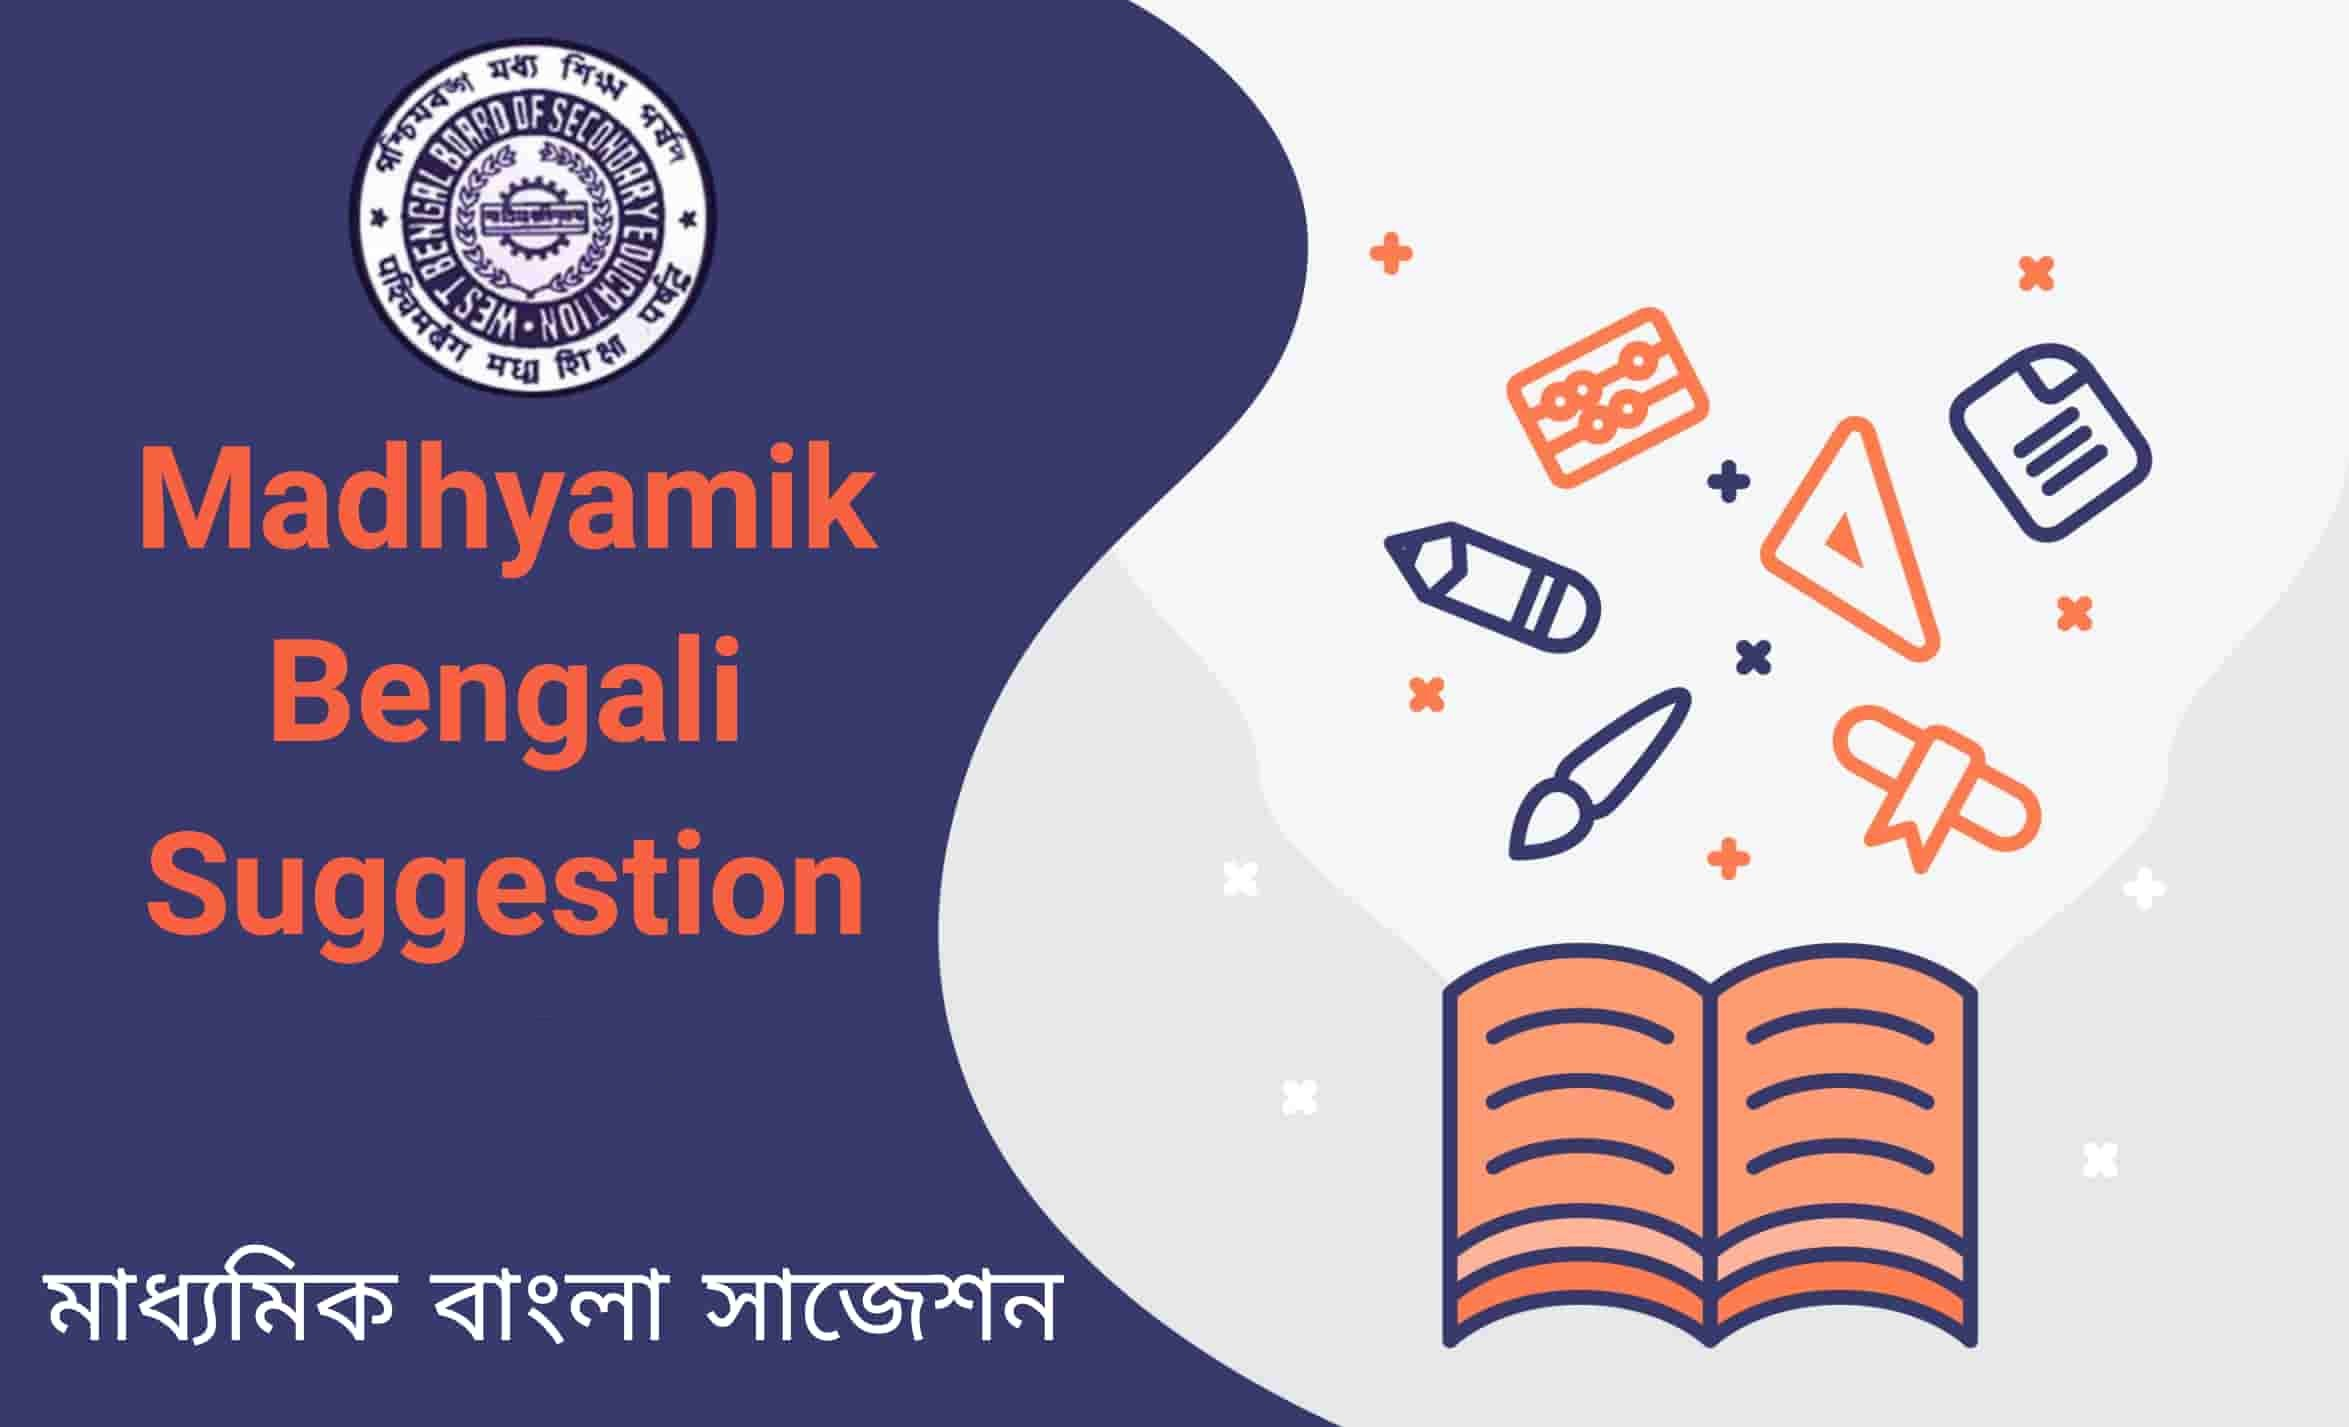 Madhyamik Bengali Suggestion 2021